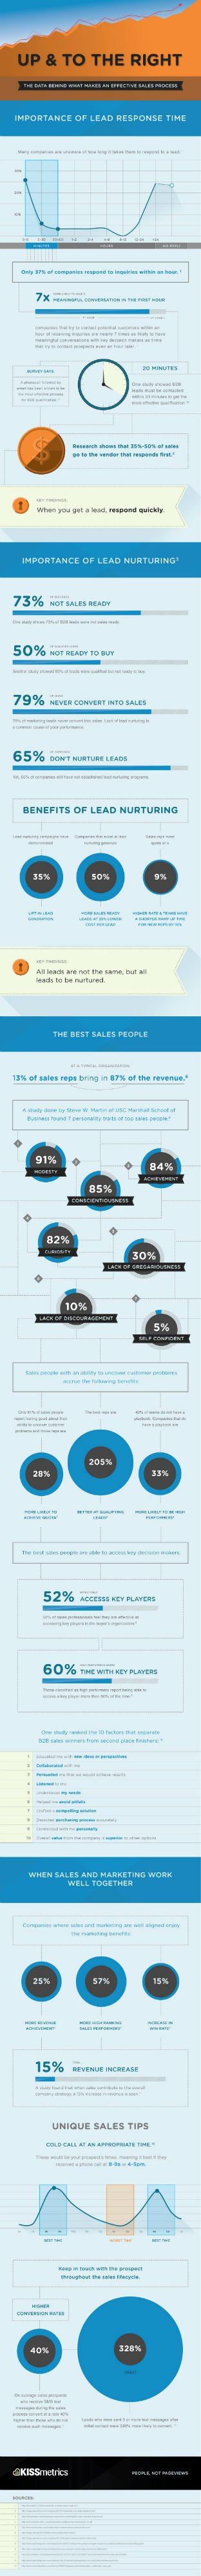 Infographic A Data Link between Marketing and Sales